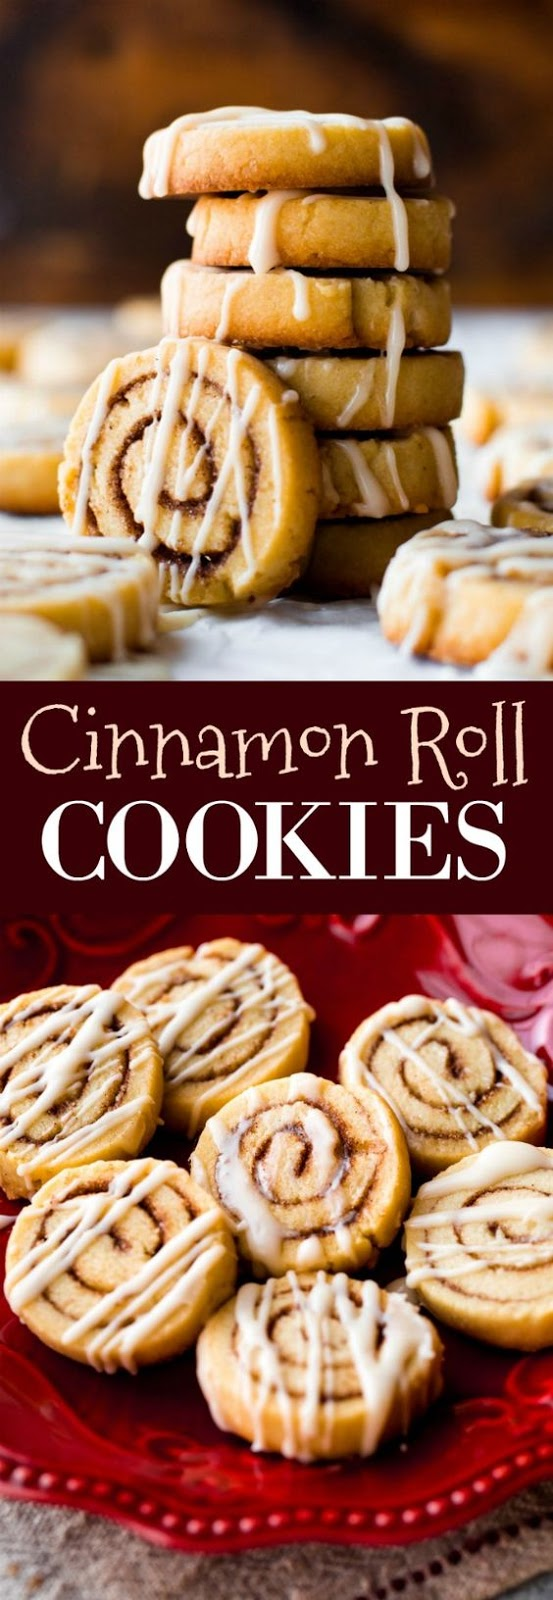 ★★★★☆ 7561 ratings | Cinnamon Roll Cookies  #HEALTHYFOOD #EASYRECIPES #DINNER #LAUCH #DELICIOUS #EASY #HOLIDAYS #RECIPE #desserts #specialdiet #worldcuisine #cake #appetizers #healthyrecipes #drinks #cookingmethod #italianrecipes #meat #veganrecipes #cookies #pasta #fruit #salad #soupappetizers #nonalcoholicdrinks #mealplanning #vegetables #soup #pastry #chocolate #dairy #alcoholicdrinks #bulgursalad #baking #snacks #beefrecipes #meatappetizers #mexicanrecipes #bread #asianrecipes #seafoodappetizers #muffins #breakfastandbrunch #condiments #cupcakes #cheese #chickenrecipes #pie #coffee #nobakedesserts #healthysnacks #seafood #grain #lunchesdinners #mexican #quickbread #liquor